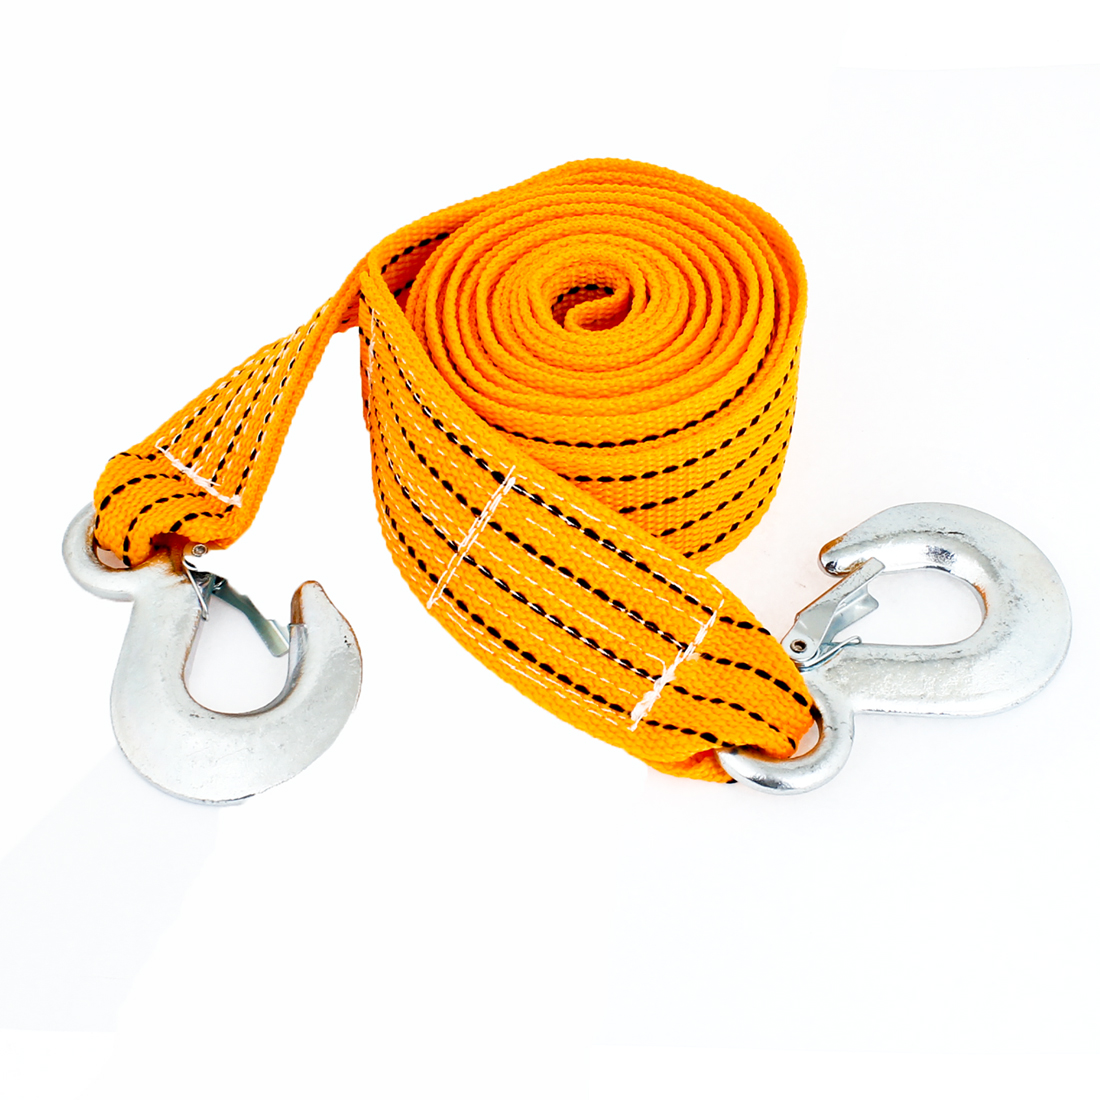 3.5M Orange Black Nylon Tow Webbing Strap Belt 3 Tons for Car